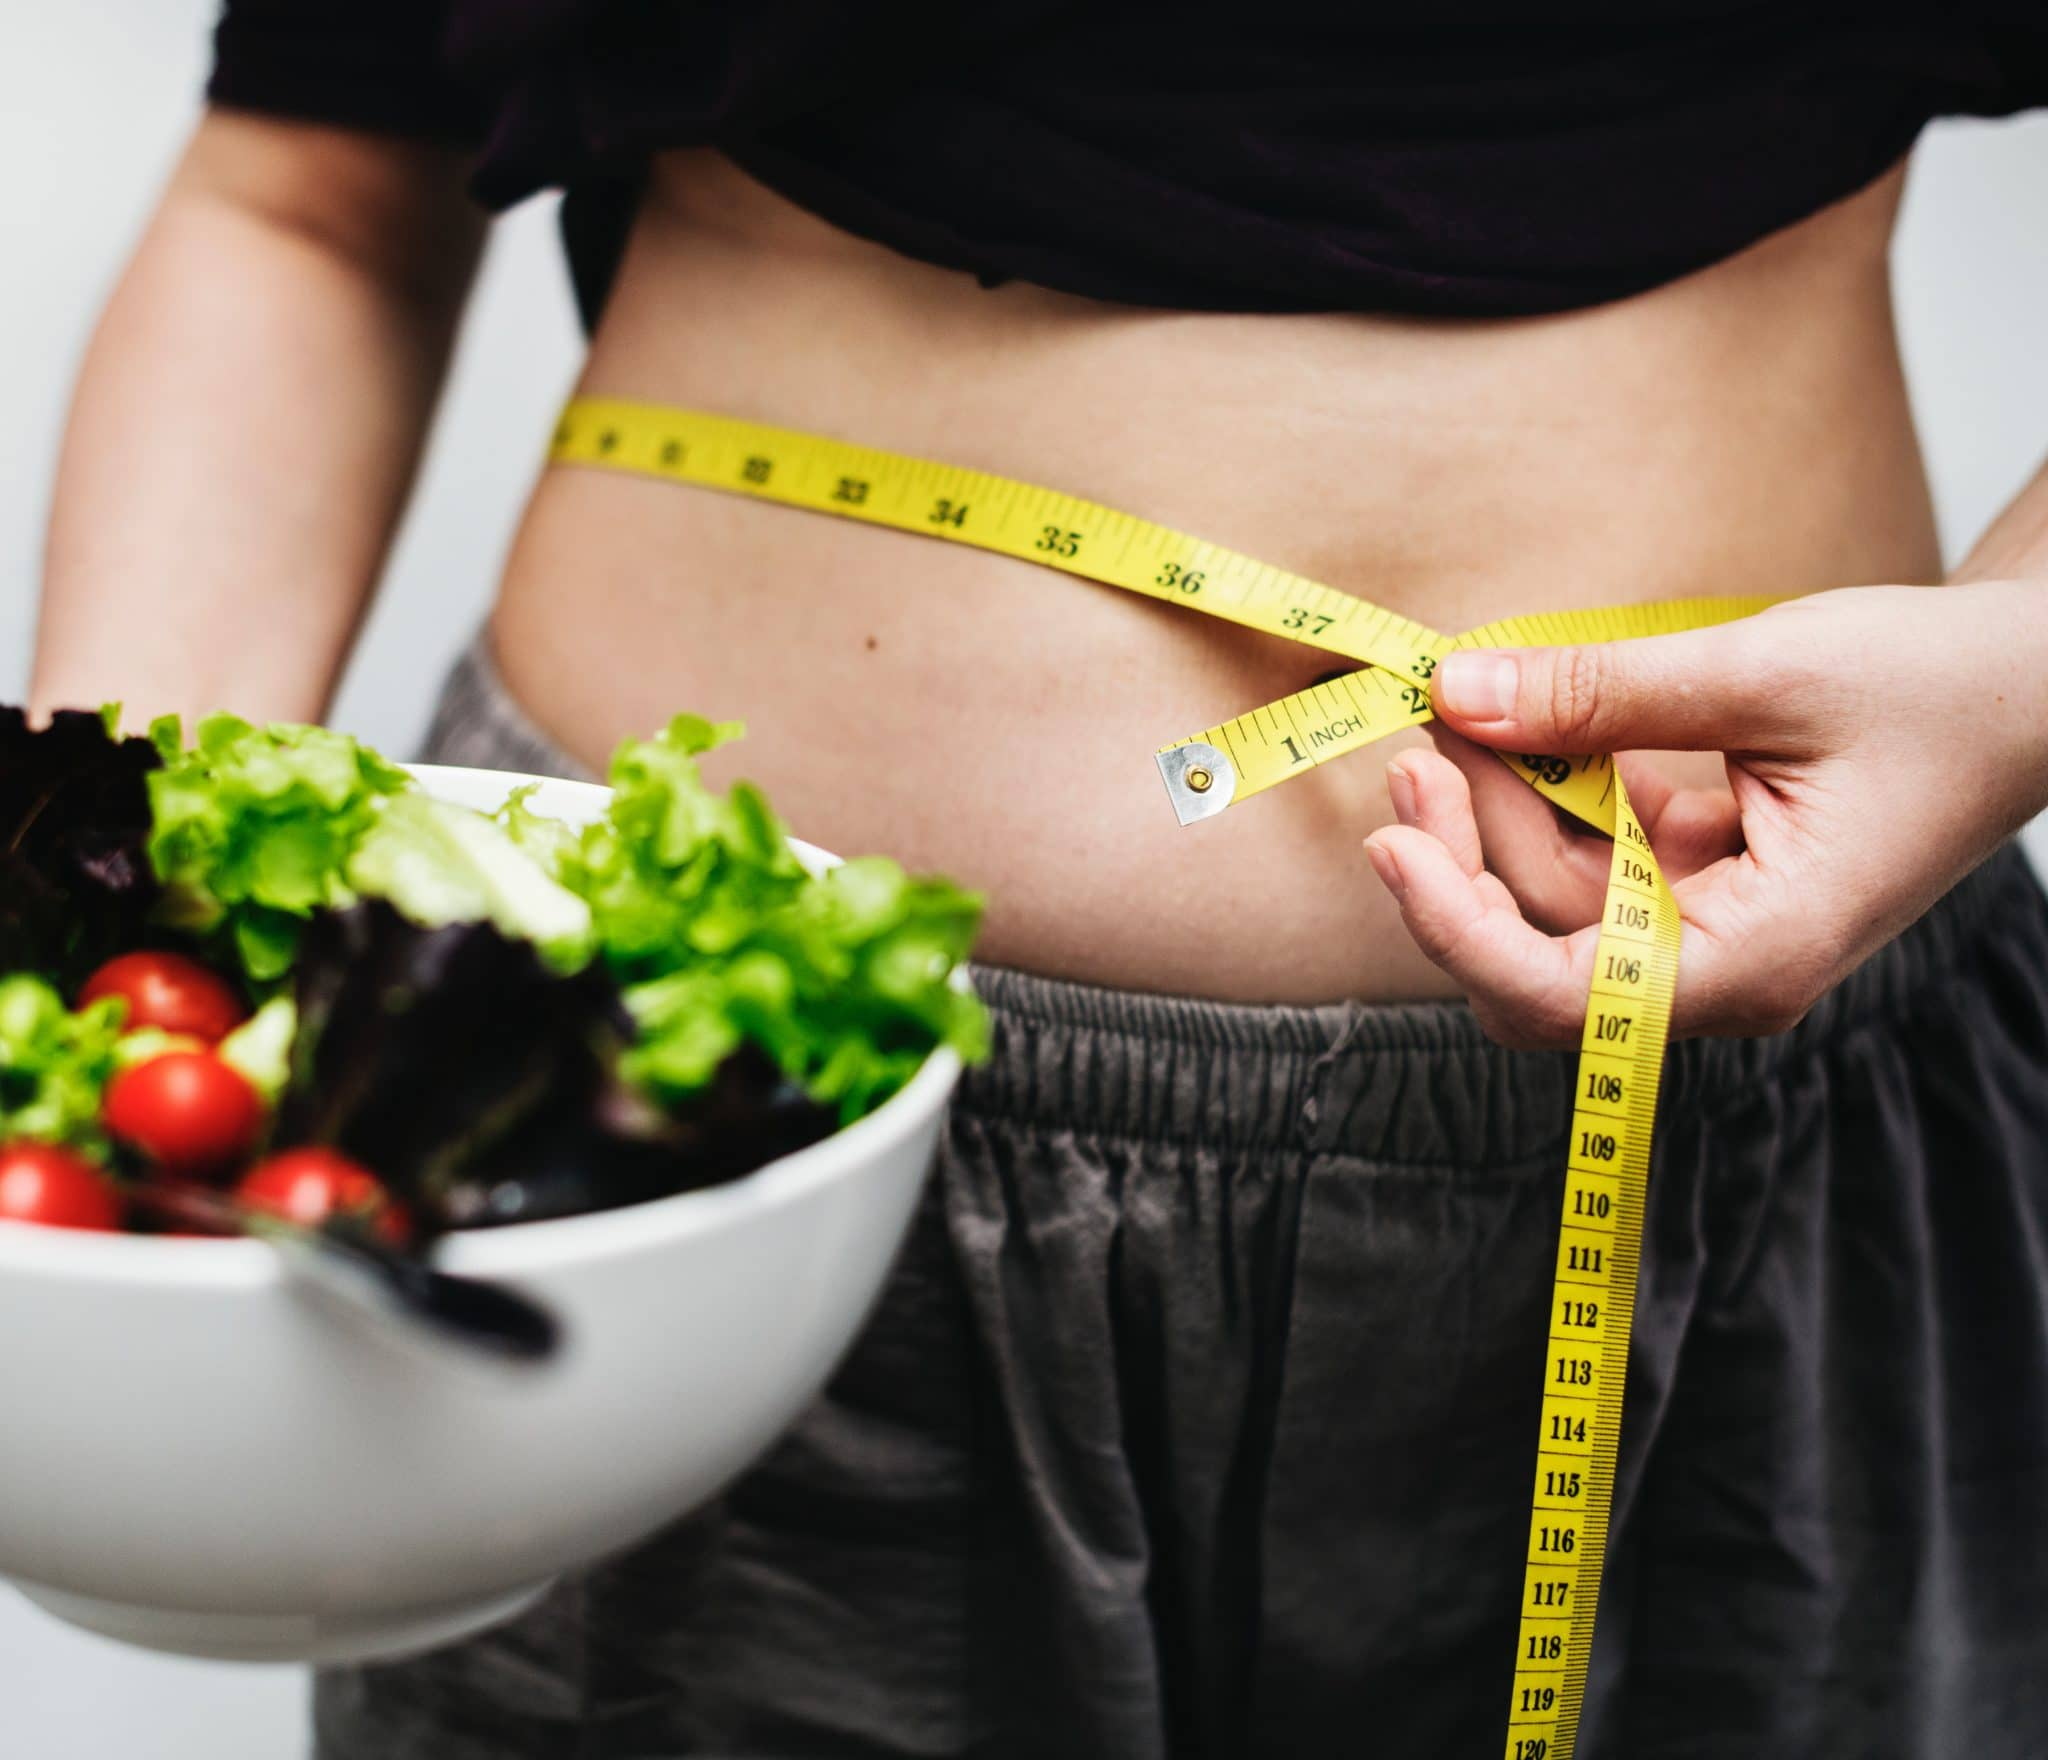 White woman holds a salad while using a yellow tape measure to measure her bare waist